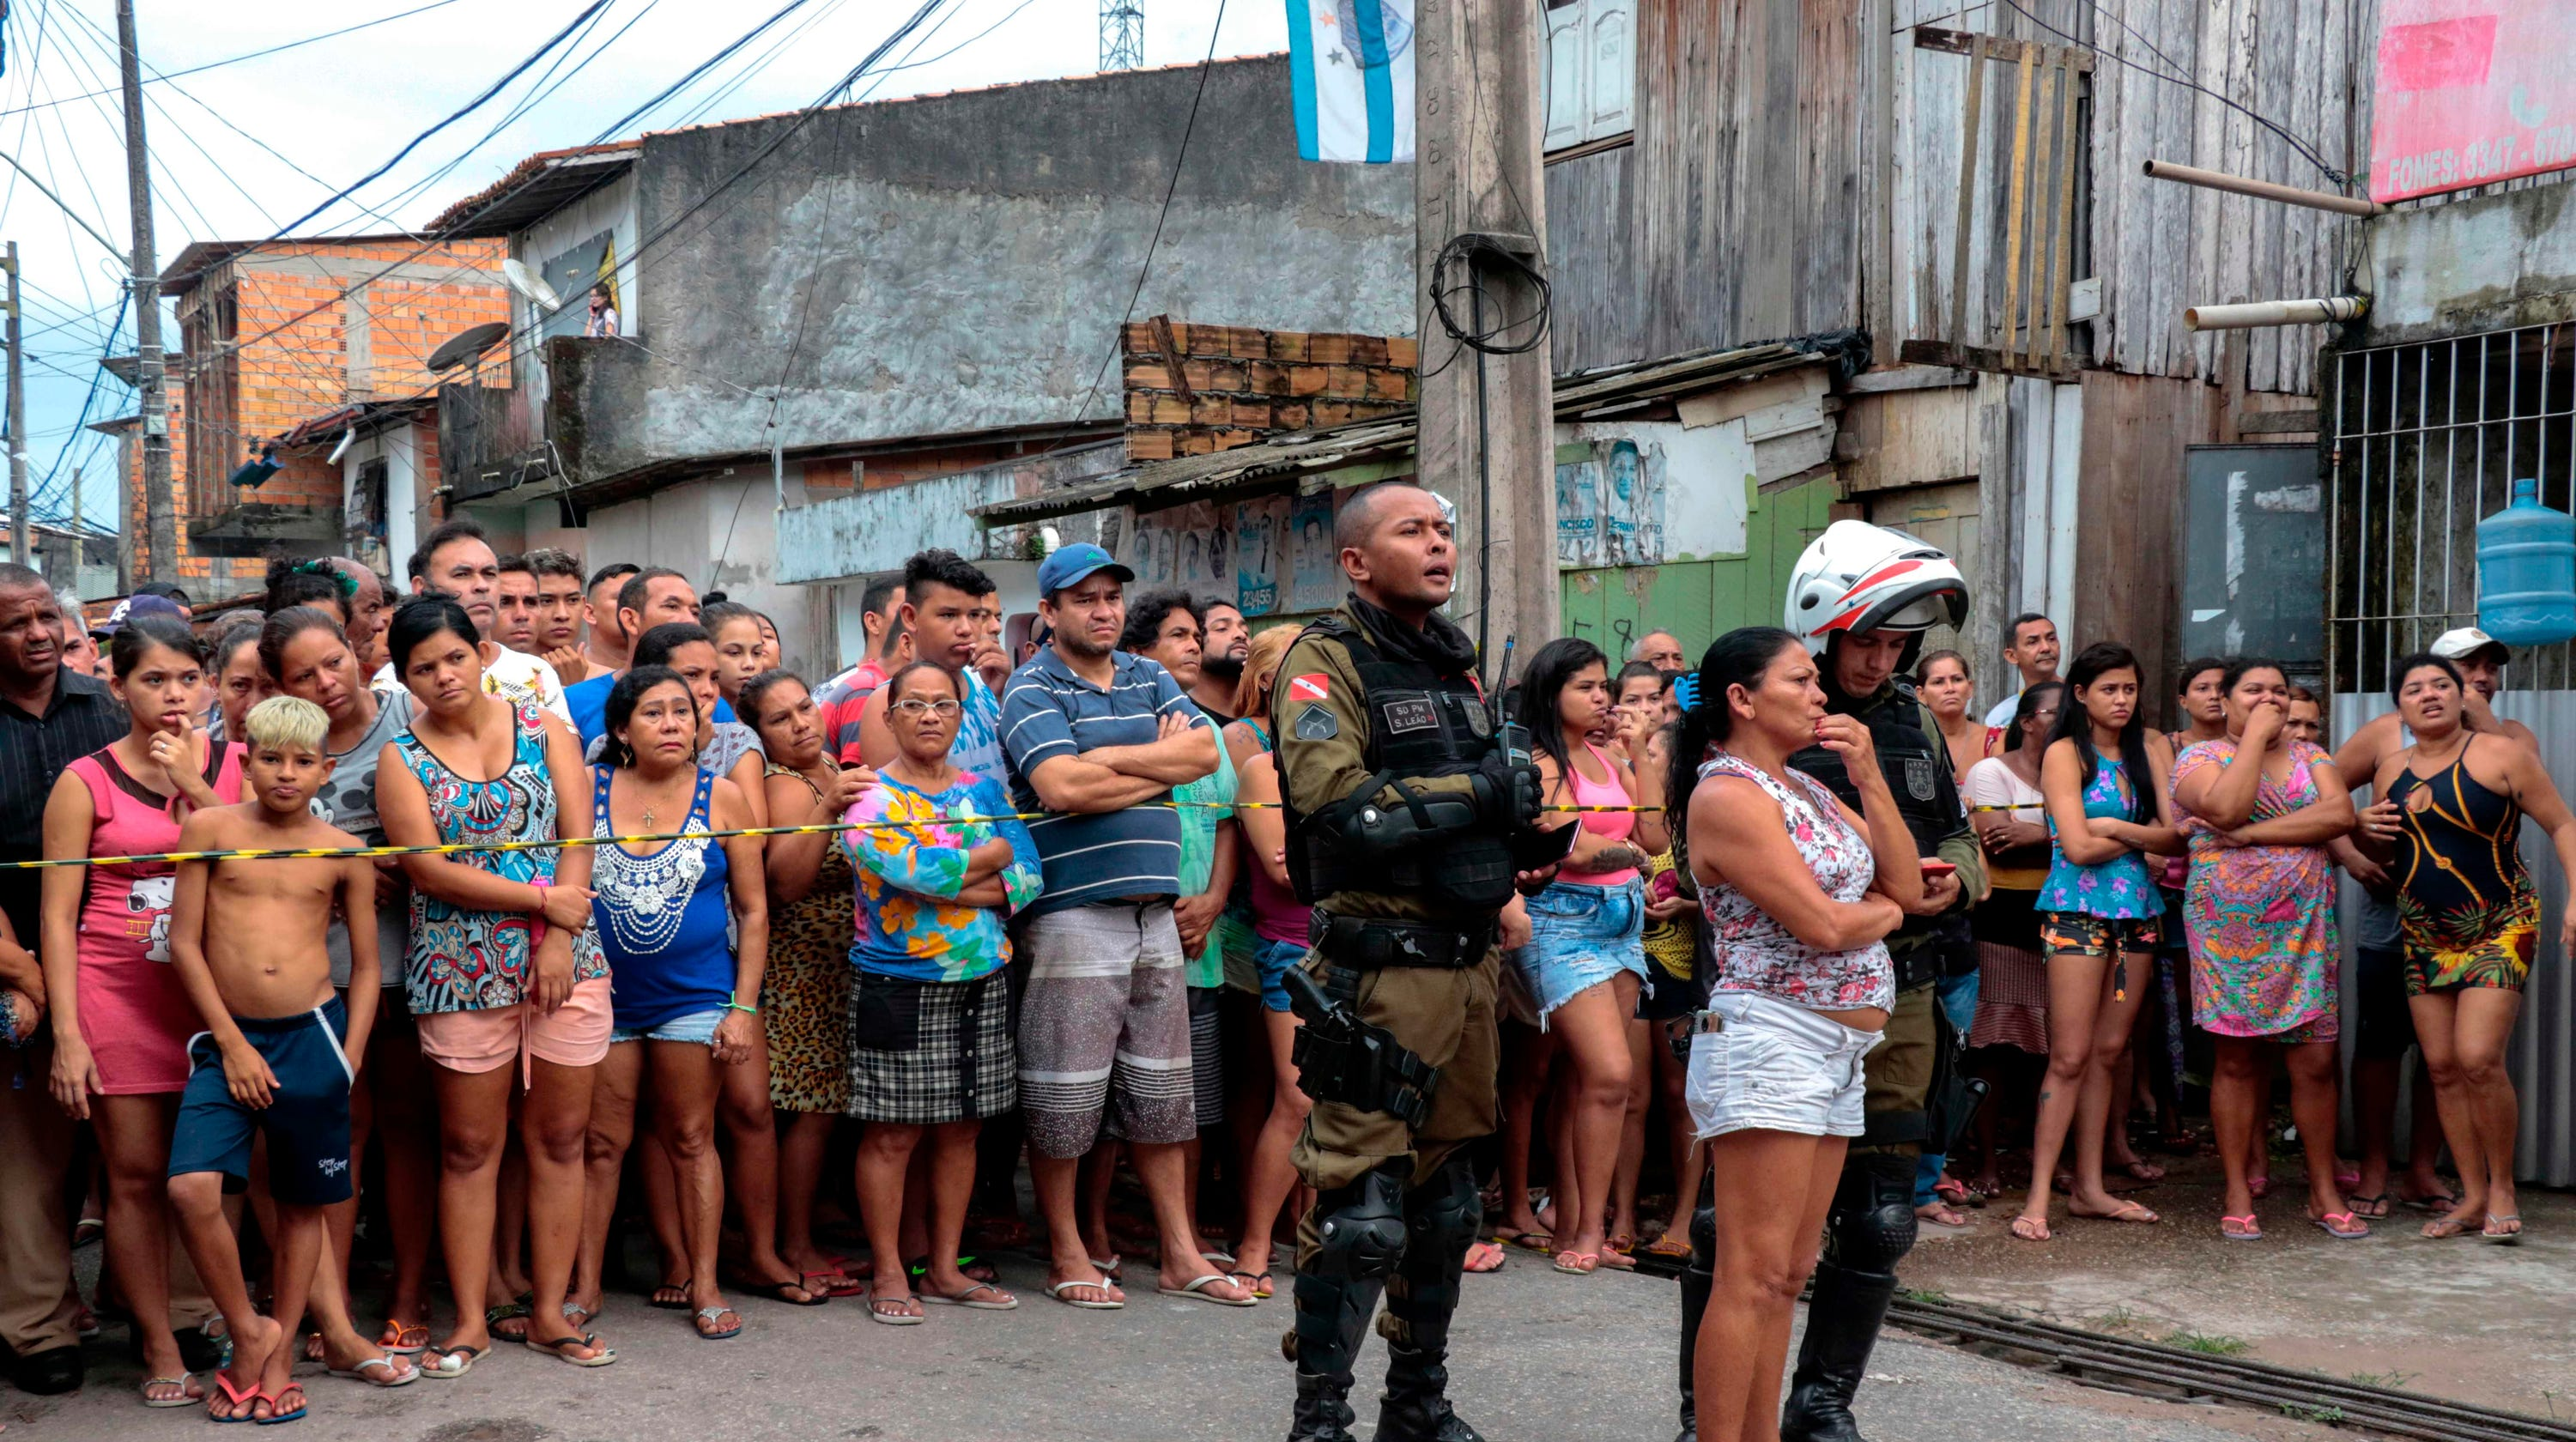 Brazil officials report 'massacre'; media say 11 dead at bar